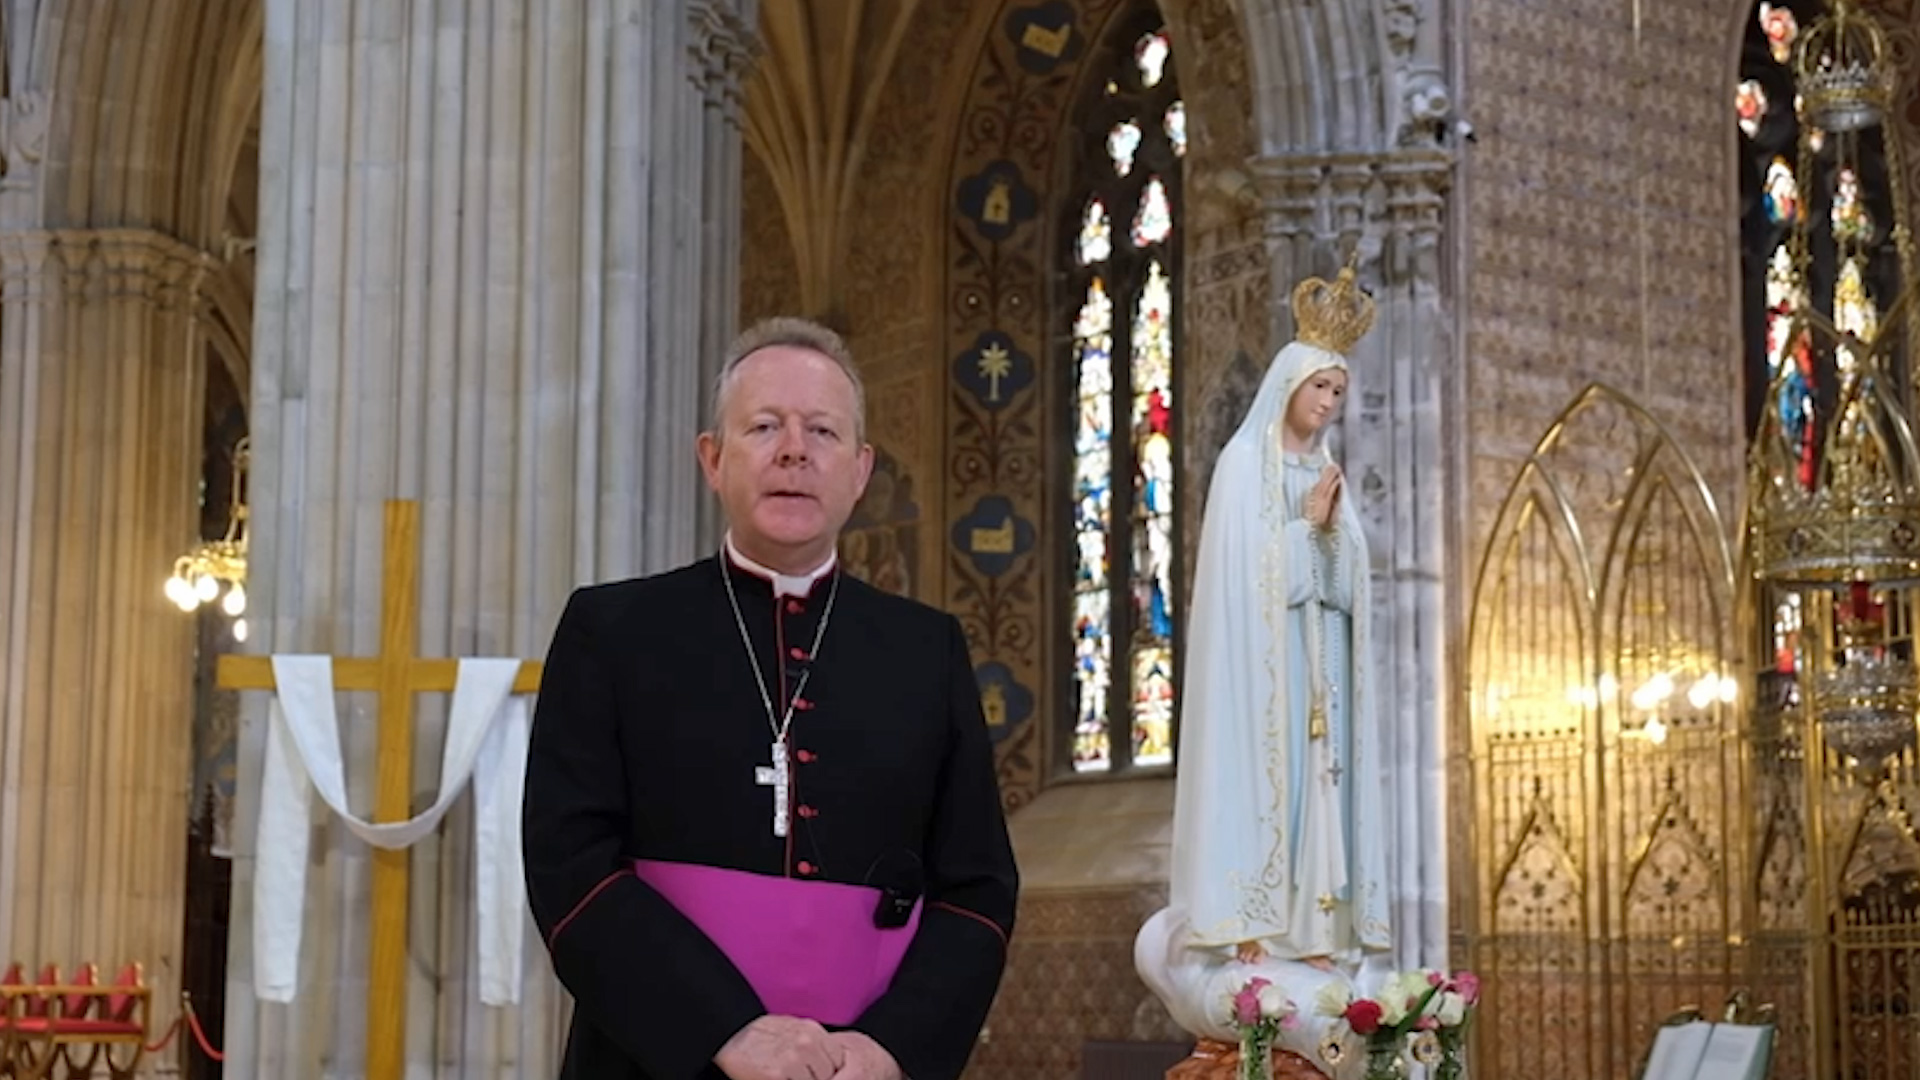 Feast of our Lady of Fatima – Archbishop Eamon Martin